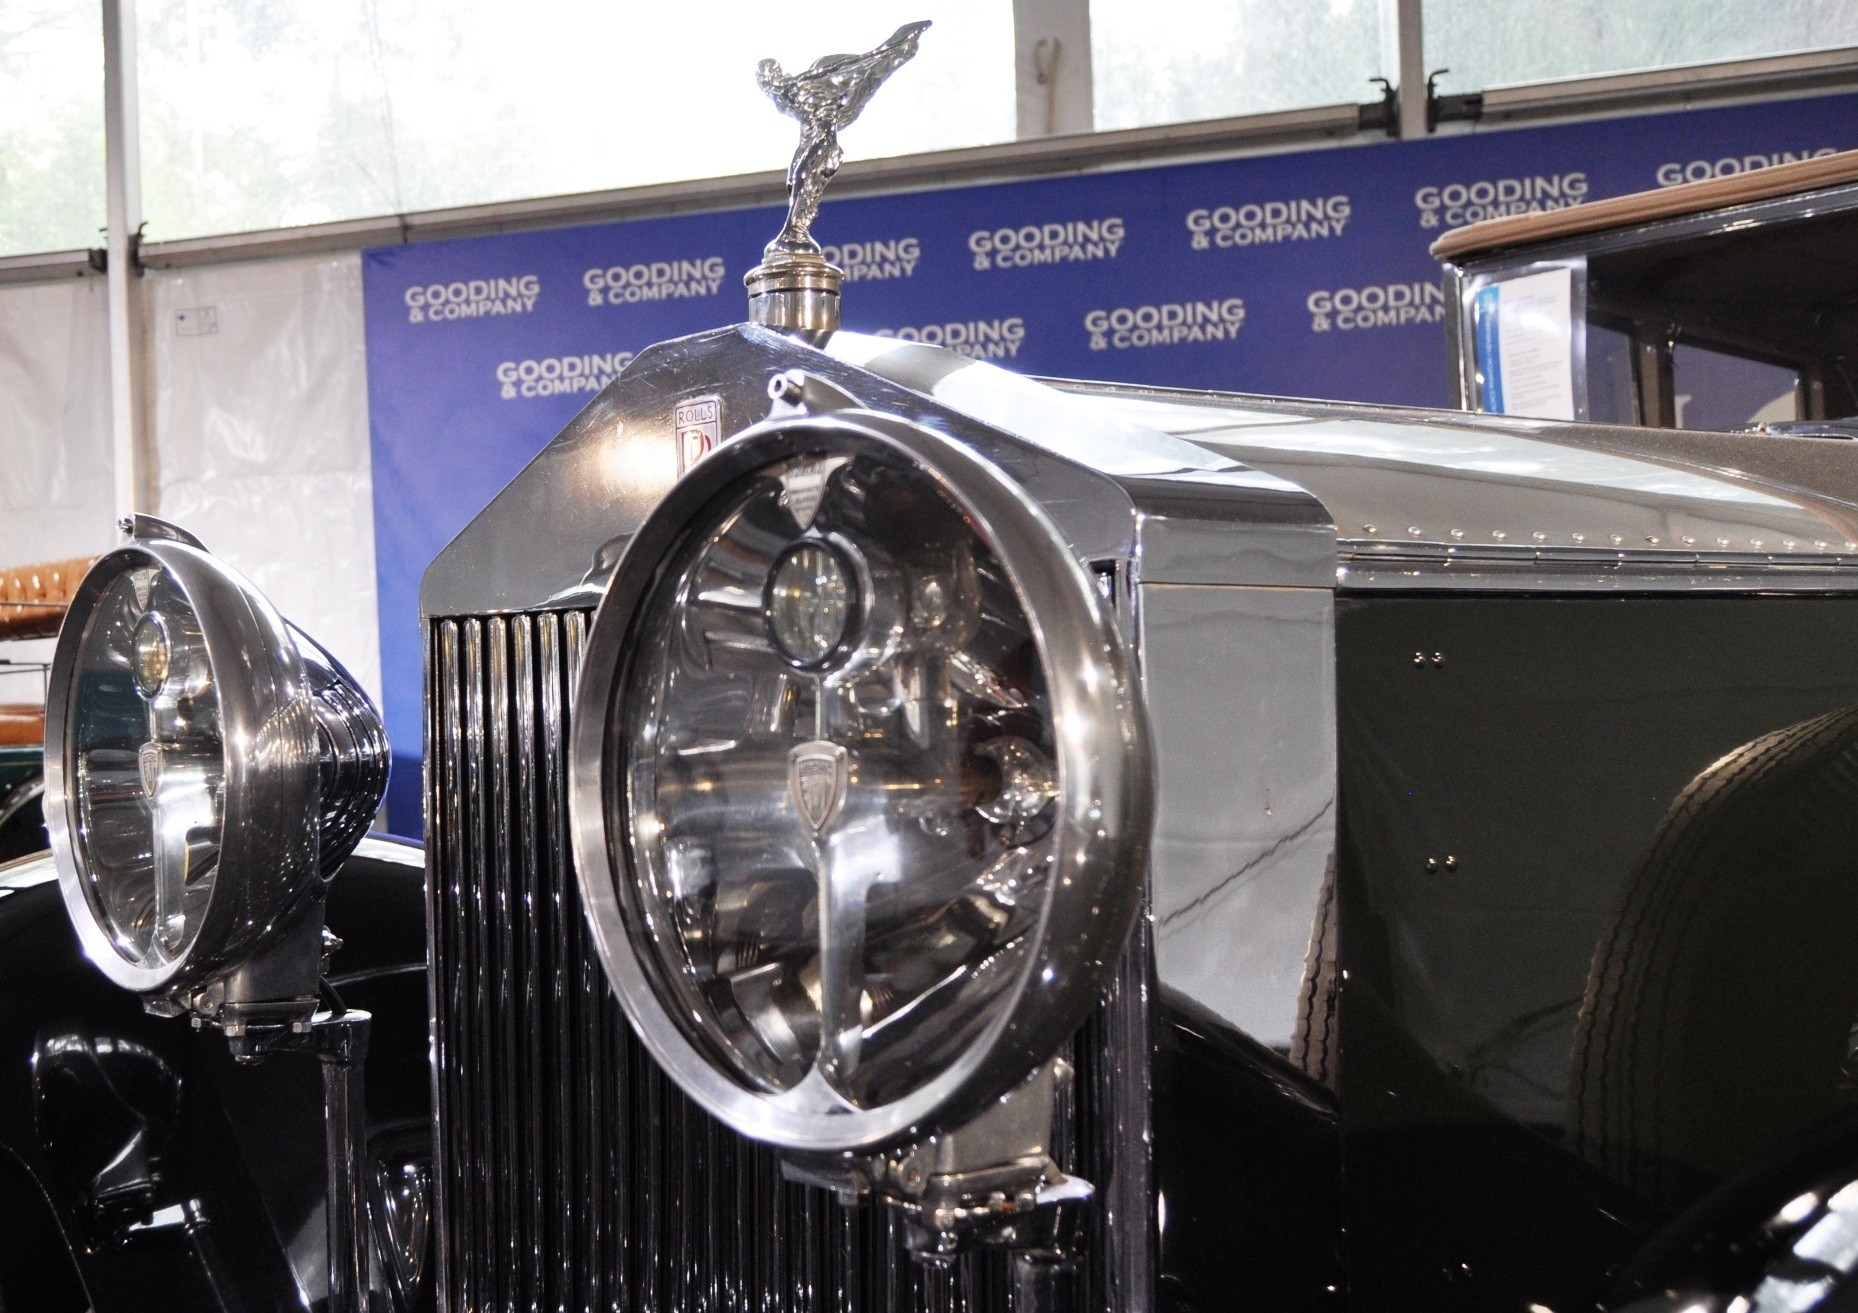 Coolest Vintage Hood Ornaments -- RM Auctions Amelia Island 2014 -- Pierce-Arrow, Cadillac, Stutz, Chrysler, Ford, Aston-Martin, Bentley and More 1